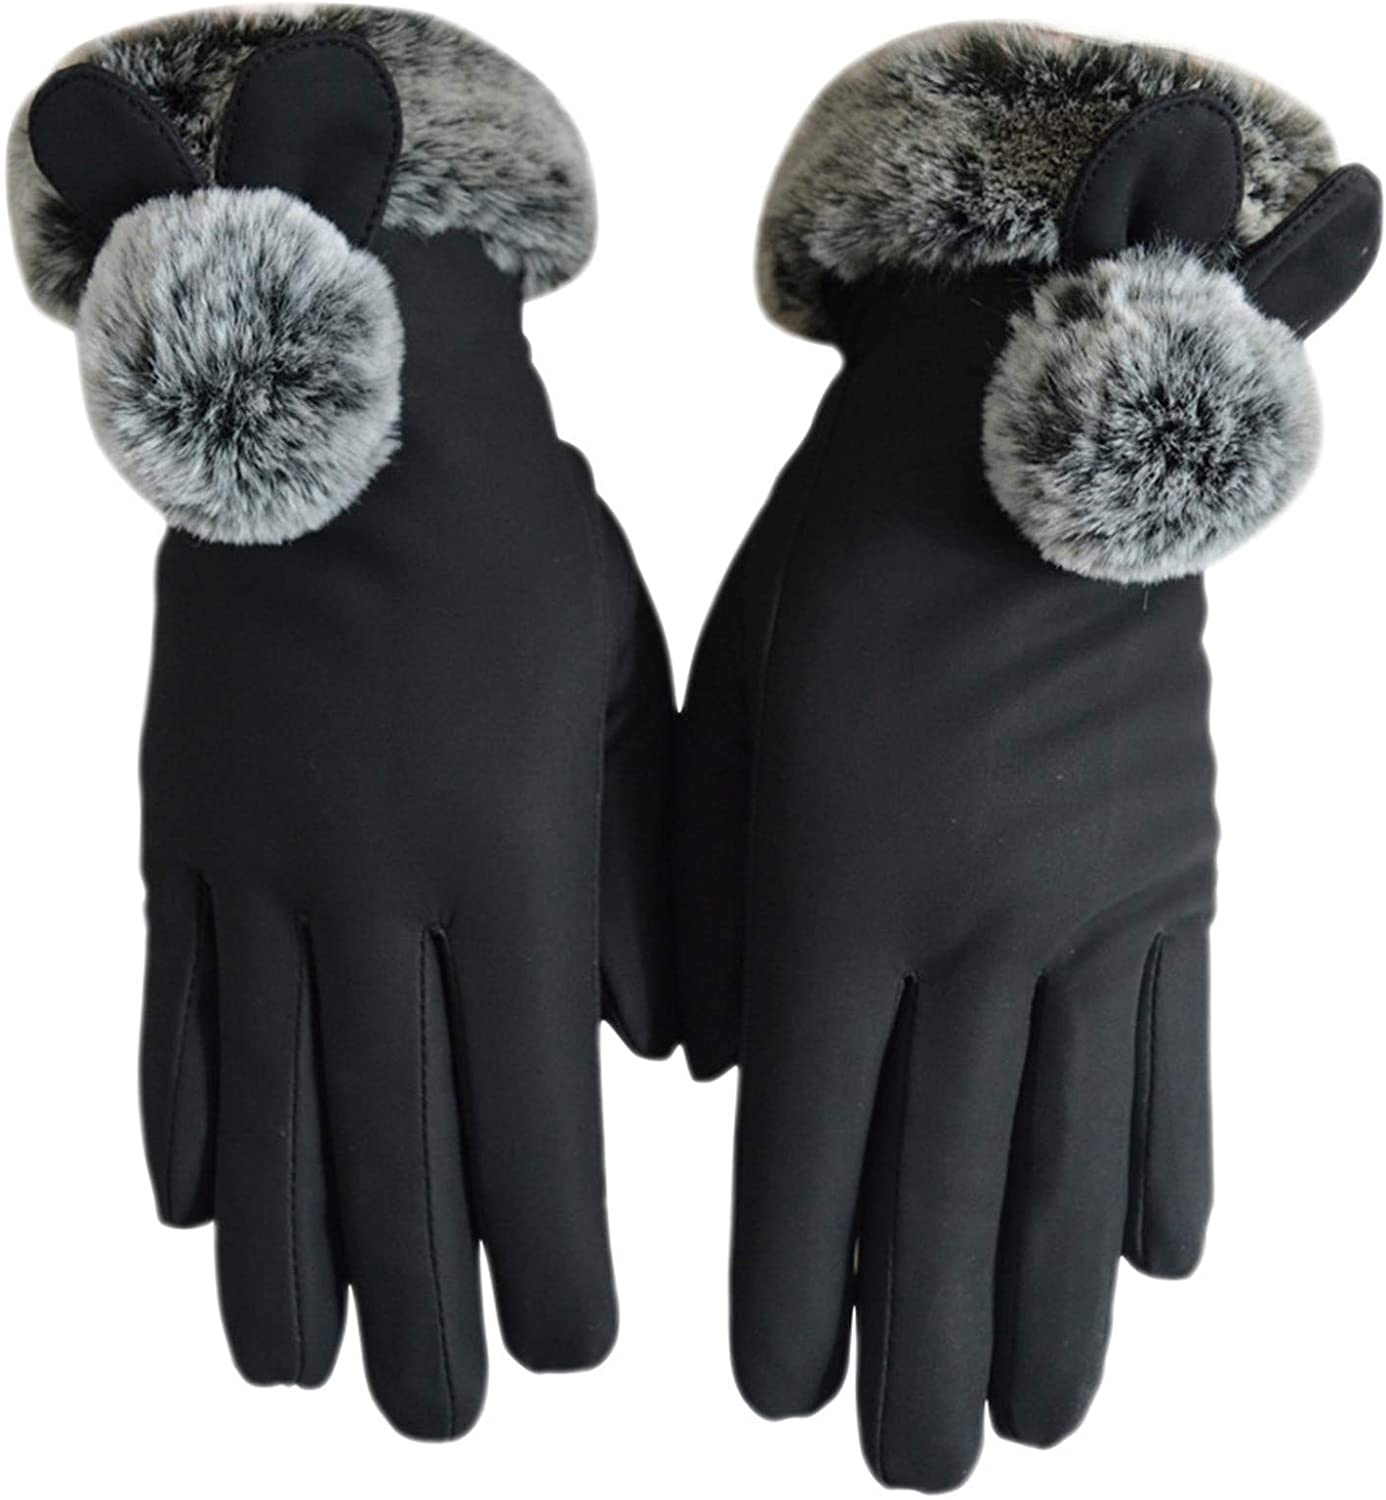 Soluo New Suede Gloves Winter Warm Touch Screen Gloves Women's Points Refer to Riding Gloves